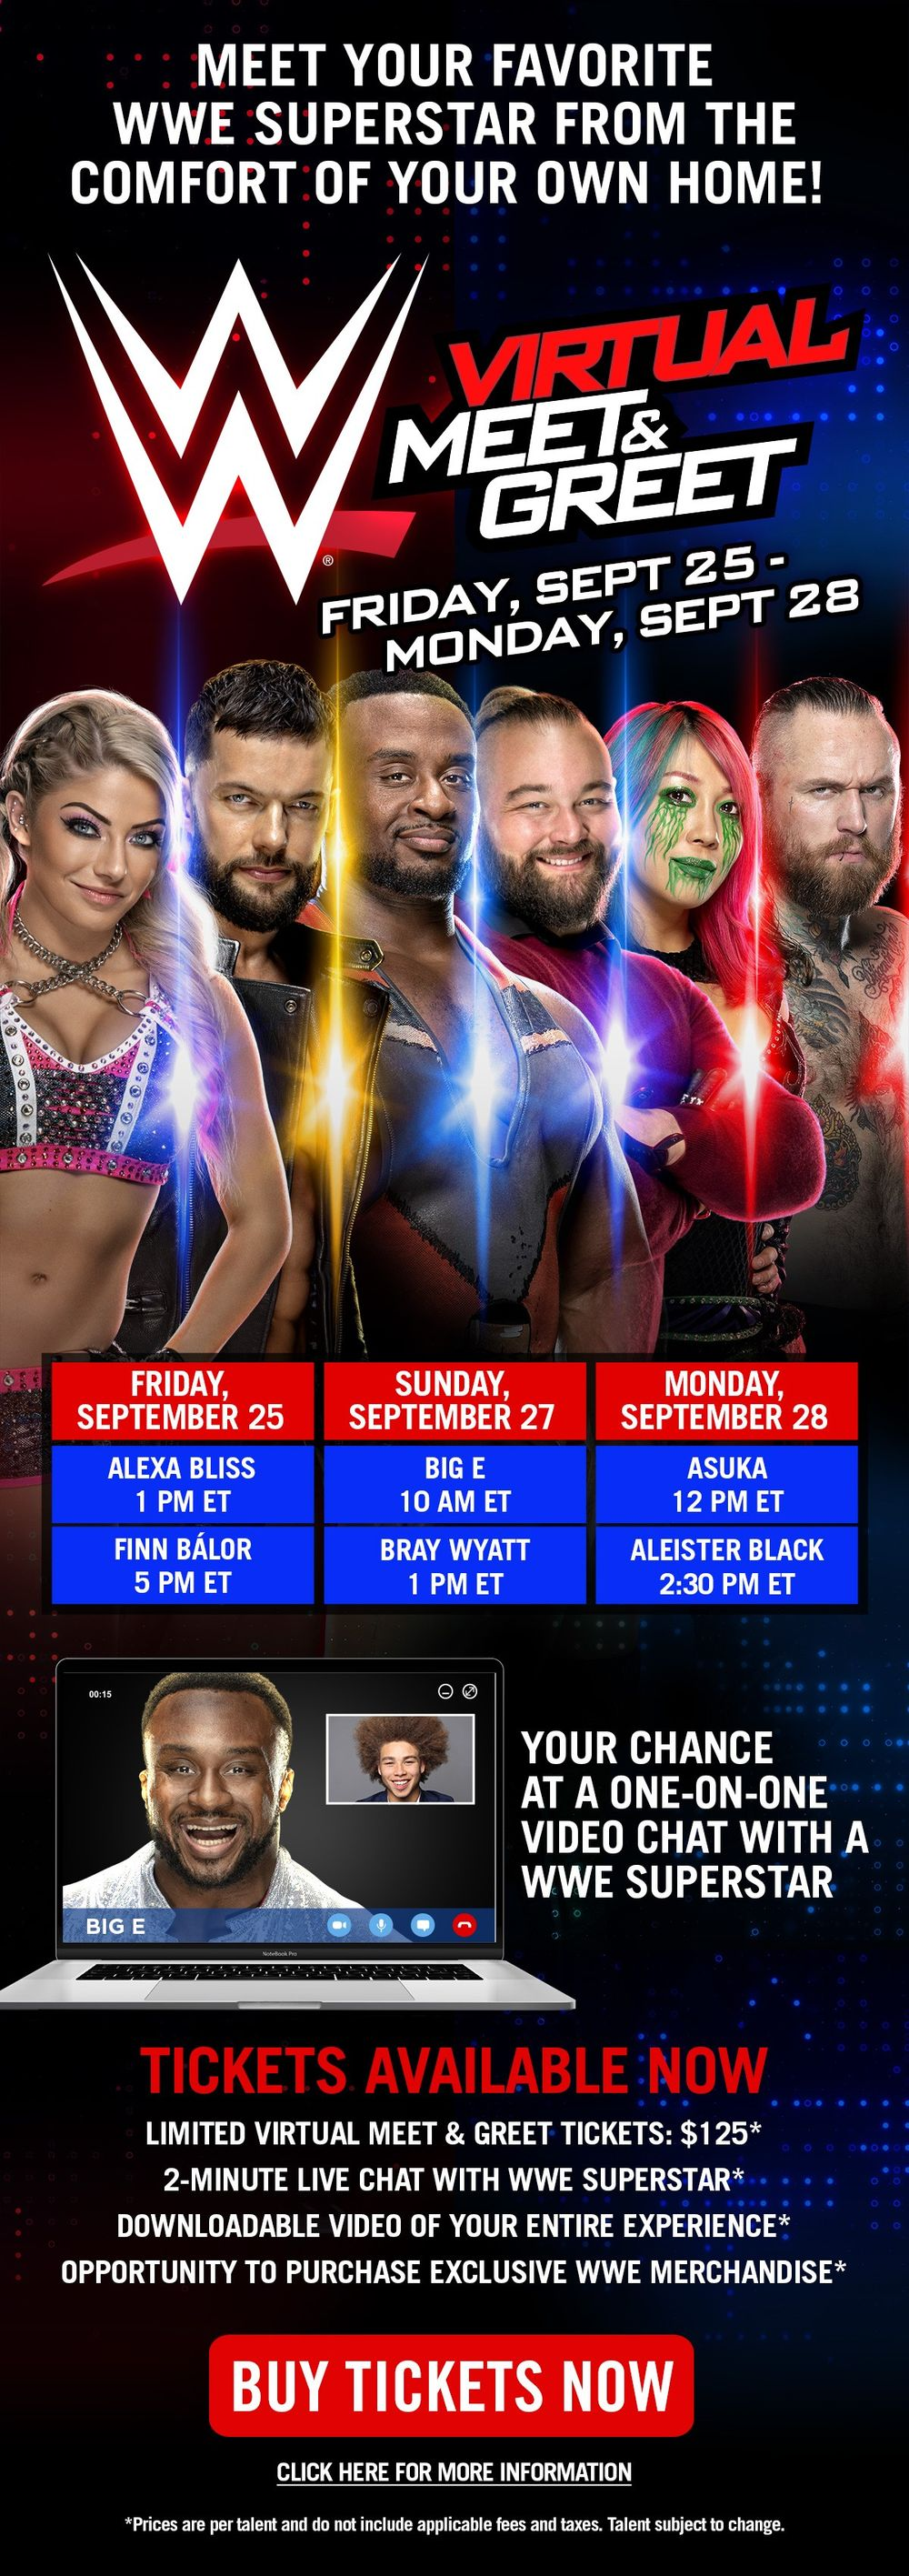 WWE Virtual Meet & Greet Tickets available now